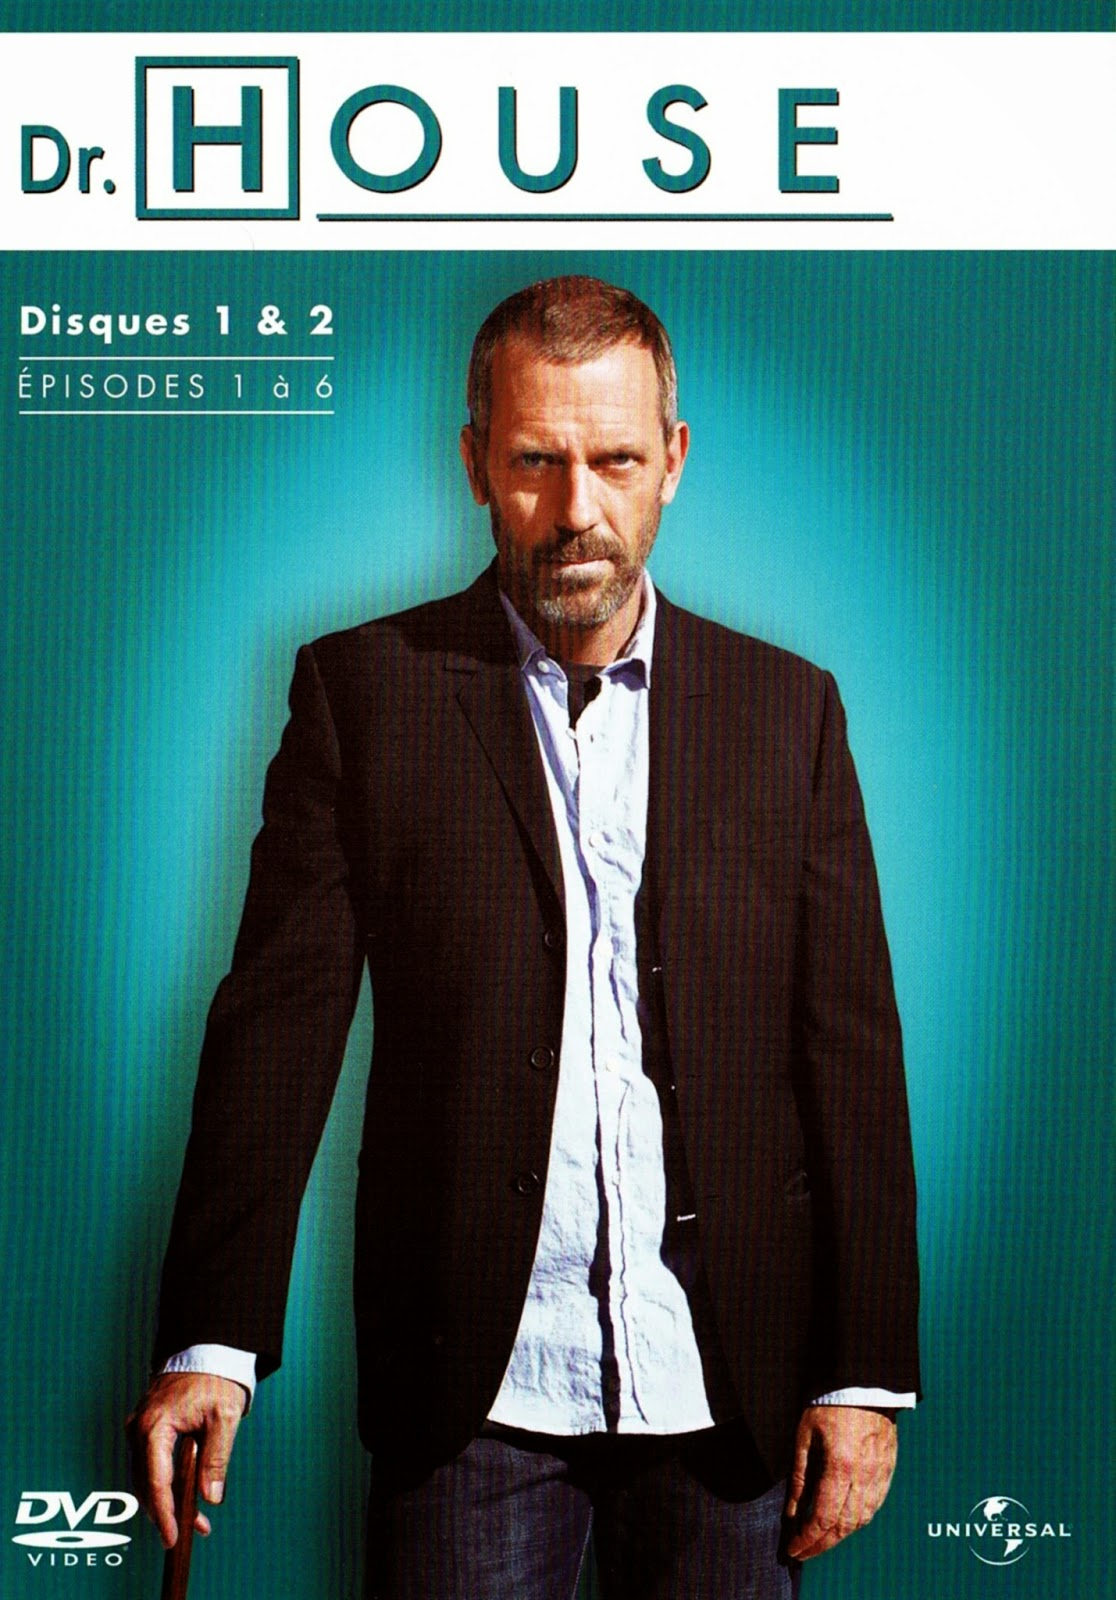 Dr. House – Todas as Temporadas Dublado / Legendado (2004)